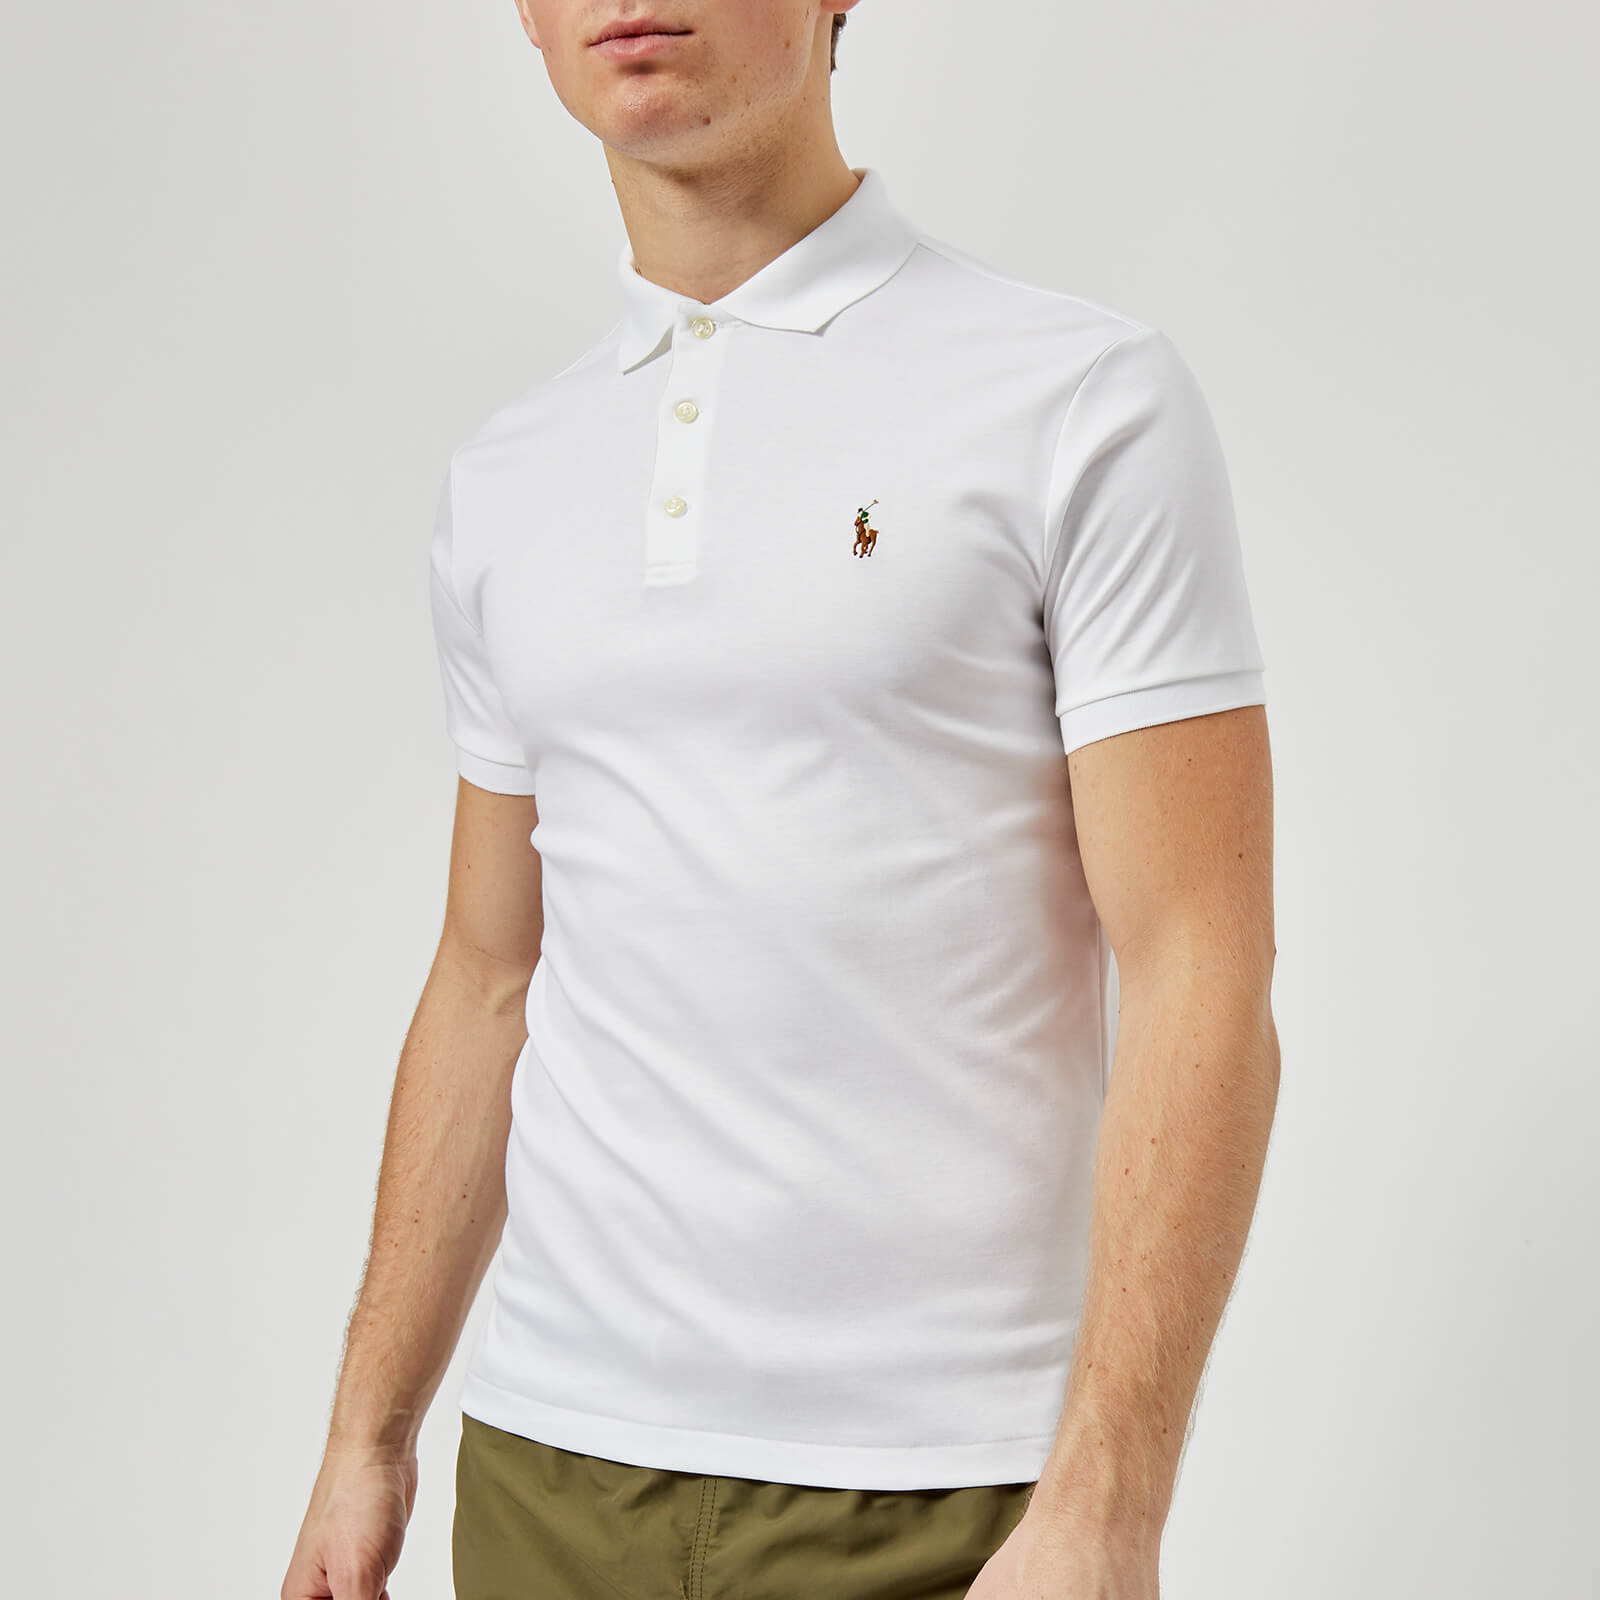 de084dc3 Polo Ralph Lauren Men's Slim Fit Pima Polo Shirt - White - Free UK Delivery  over £50